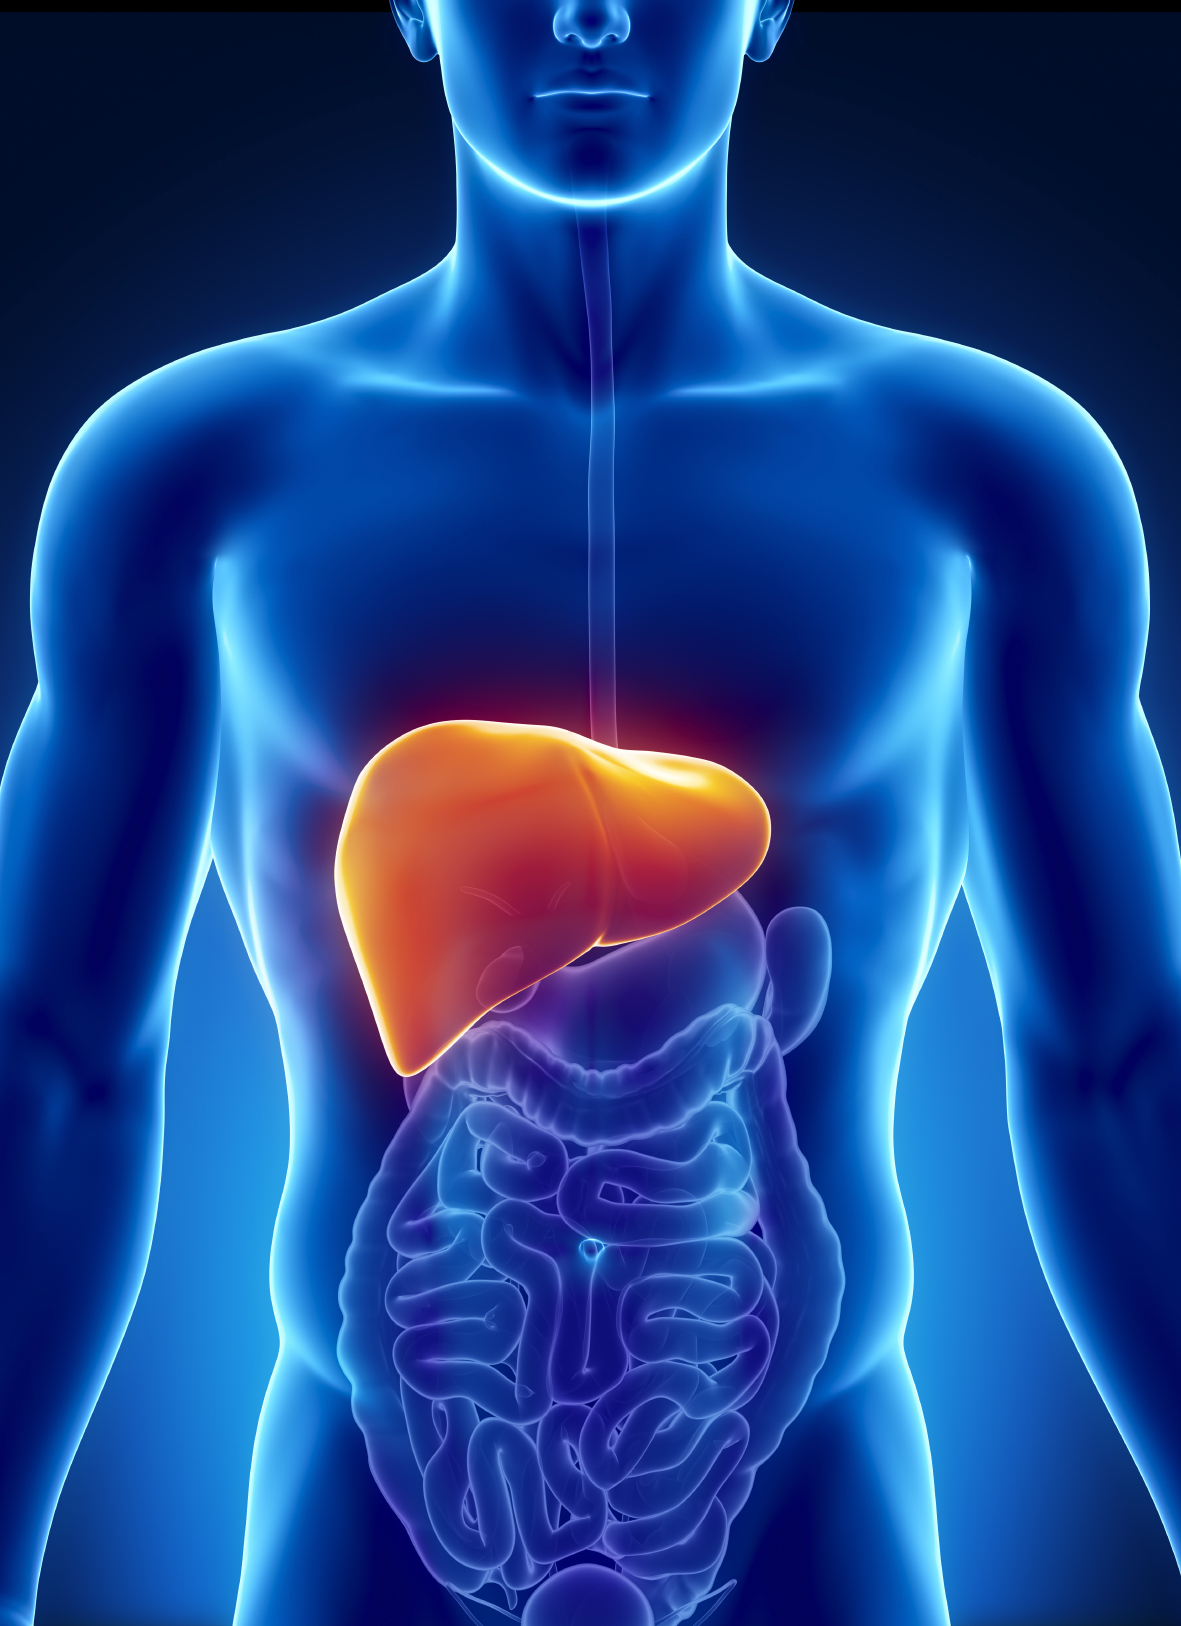 Liver, Biliary System And Pancreas